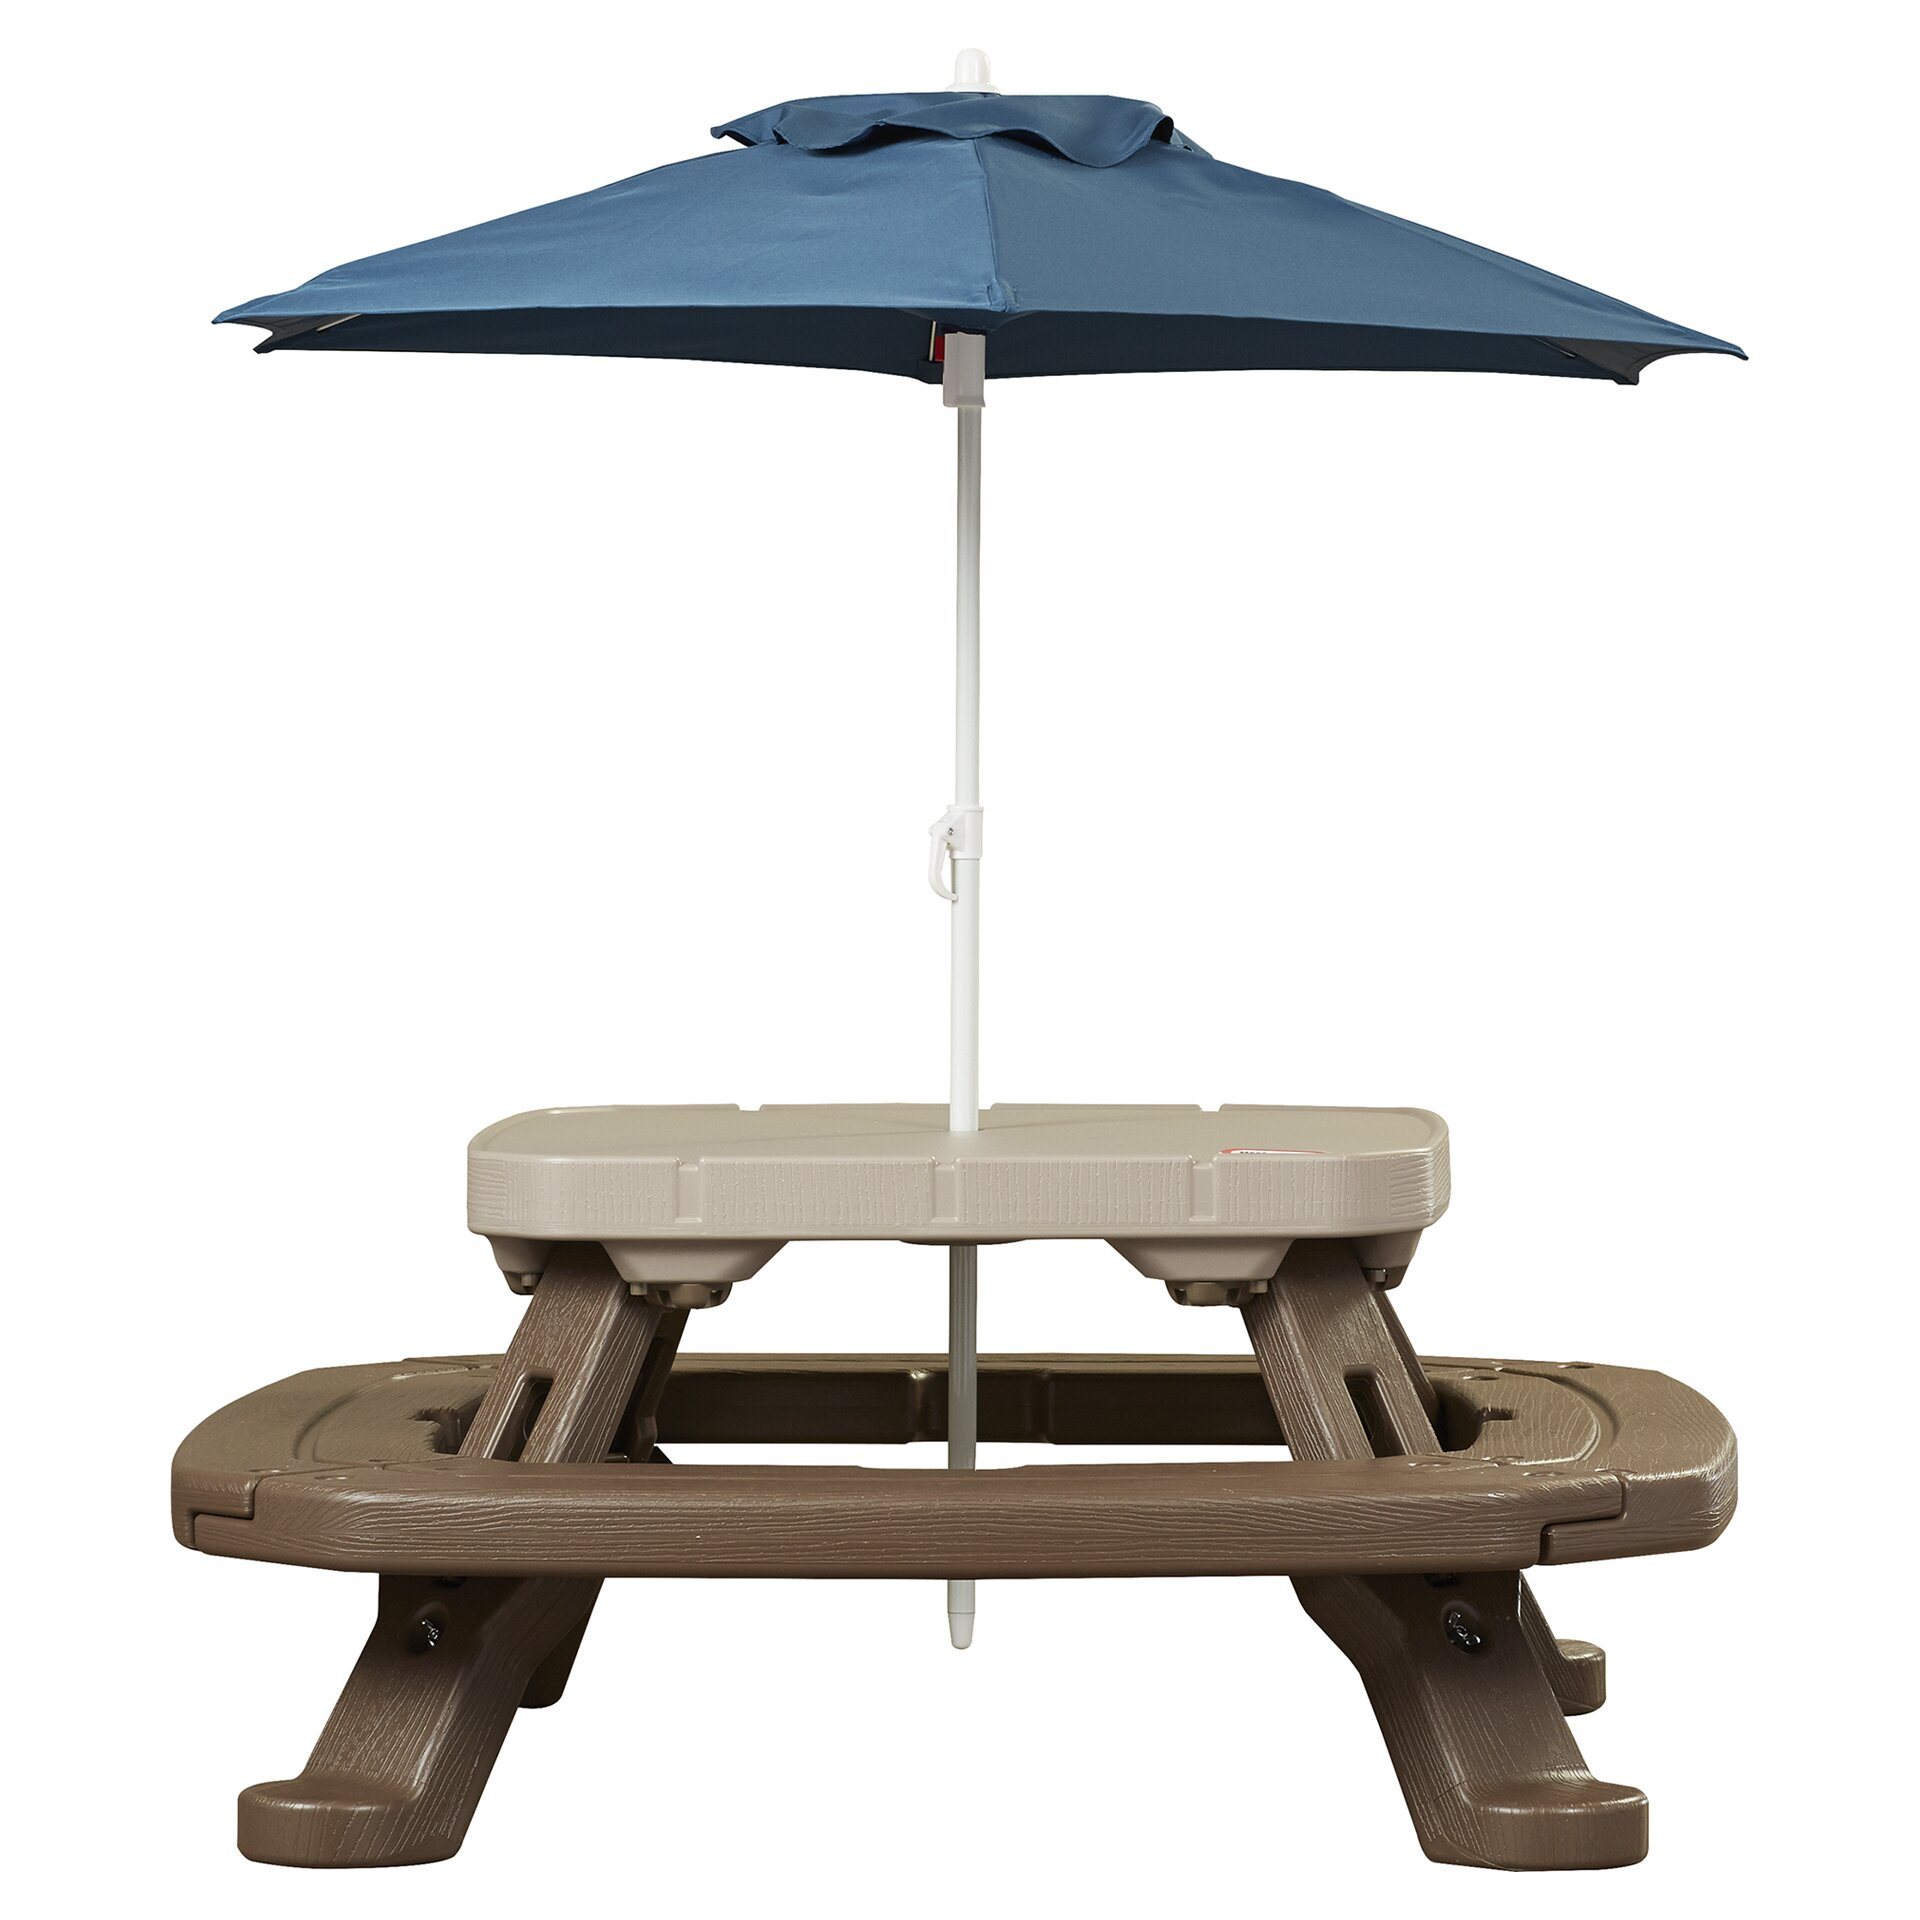 Little Tikes Fold N Store Picnic Table With Market Umbrella picture on Little Tikes Endless Adventures Fold n Store Umbrella Picnic Table 632433M JD1698 with Little Tikes Fold N Store Picnic Table With Market Umbrella, Folding Table a102ec7876a4db9c82186322f215c2d7